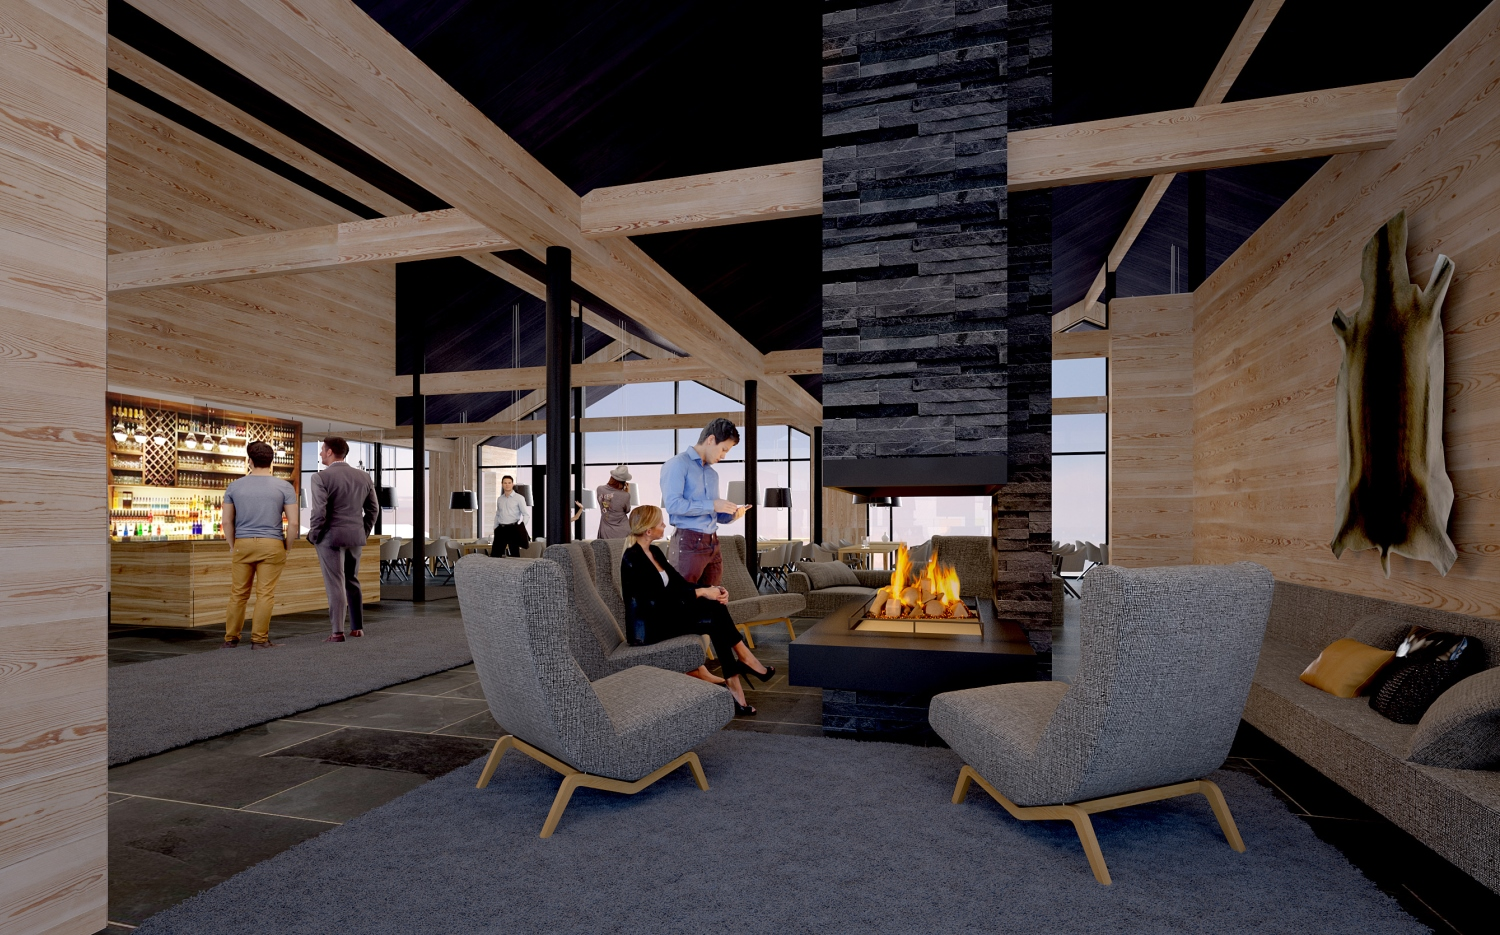 Star Arctic Hotel - Bar and Reception (artist's impression)